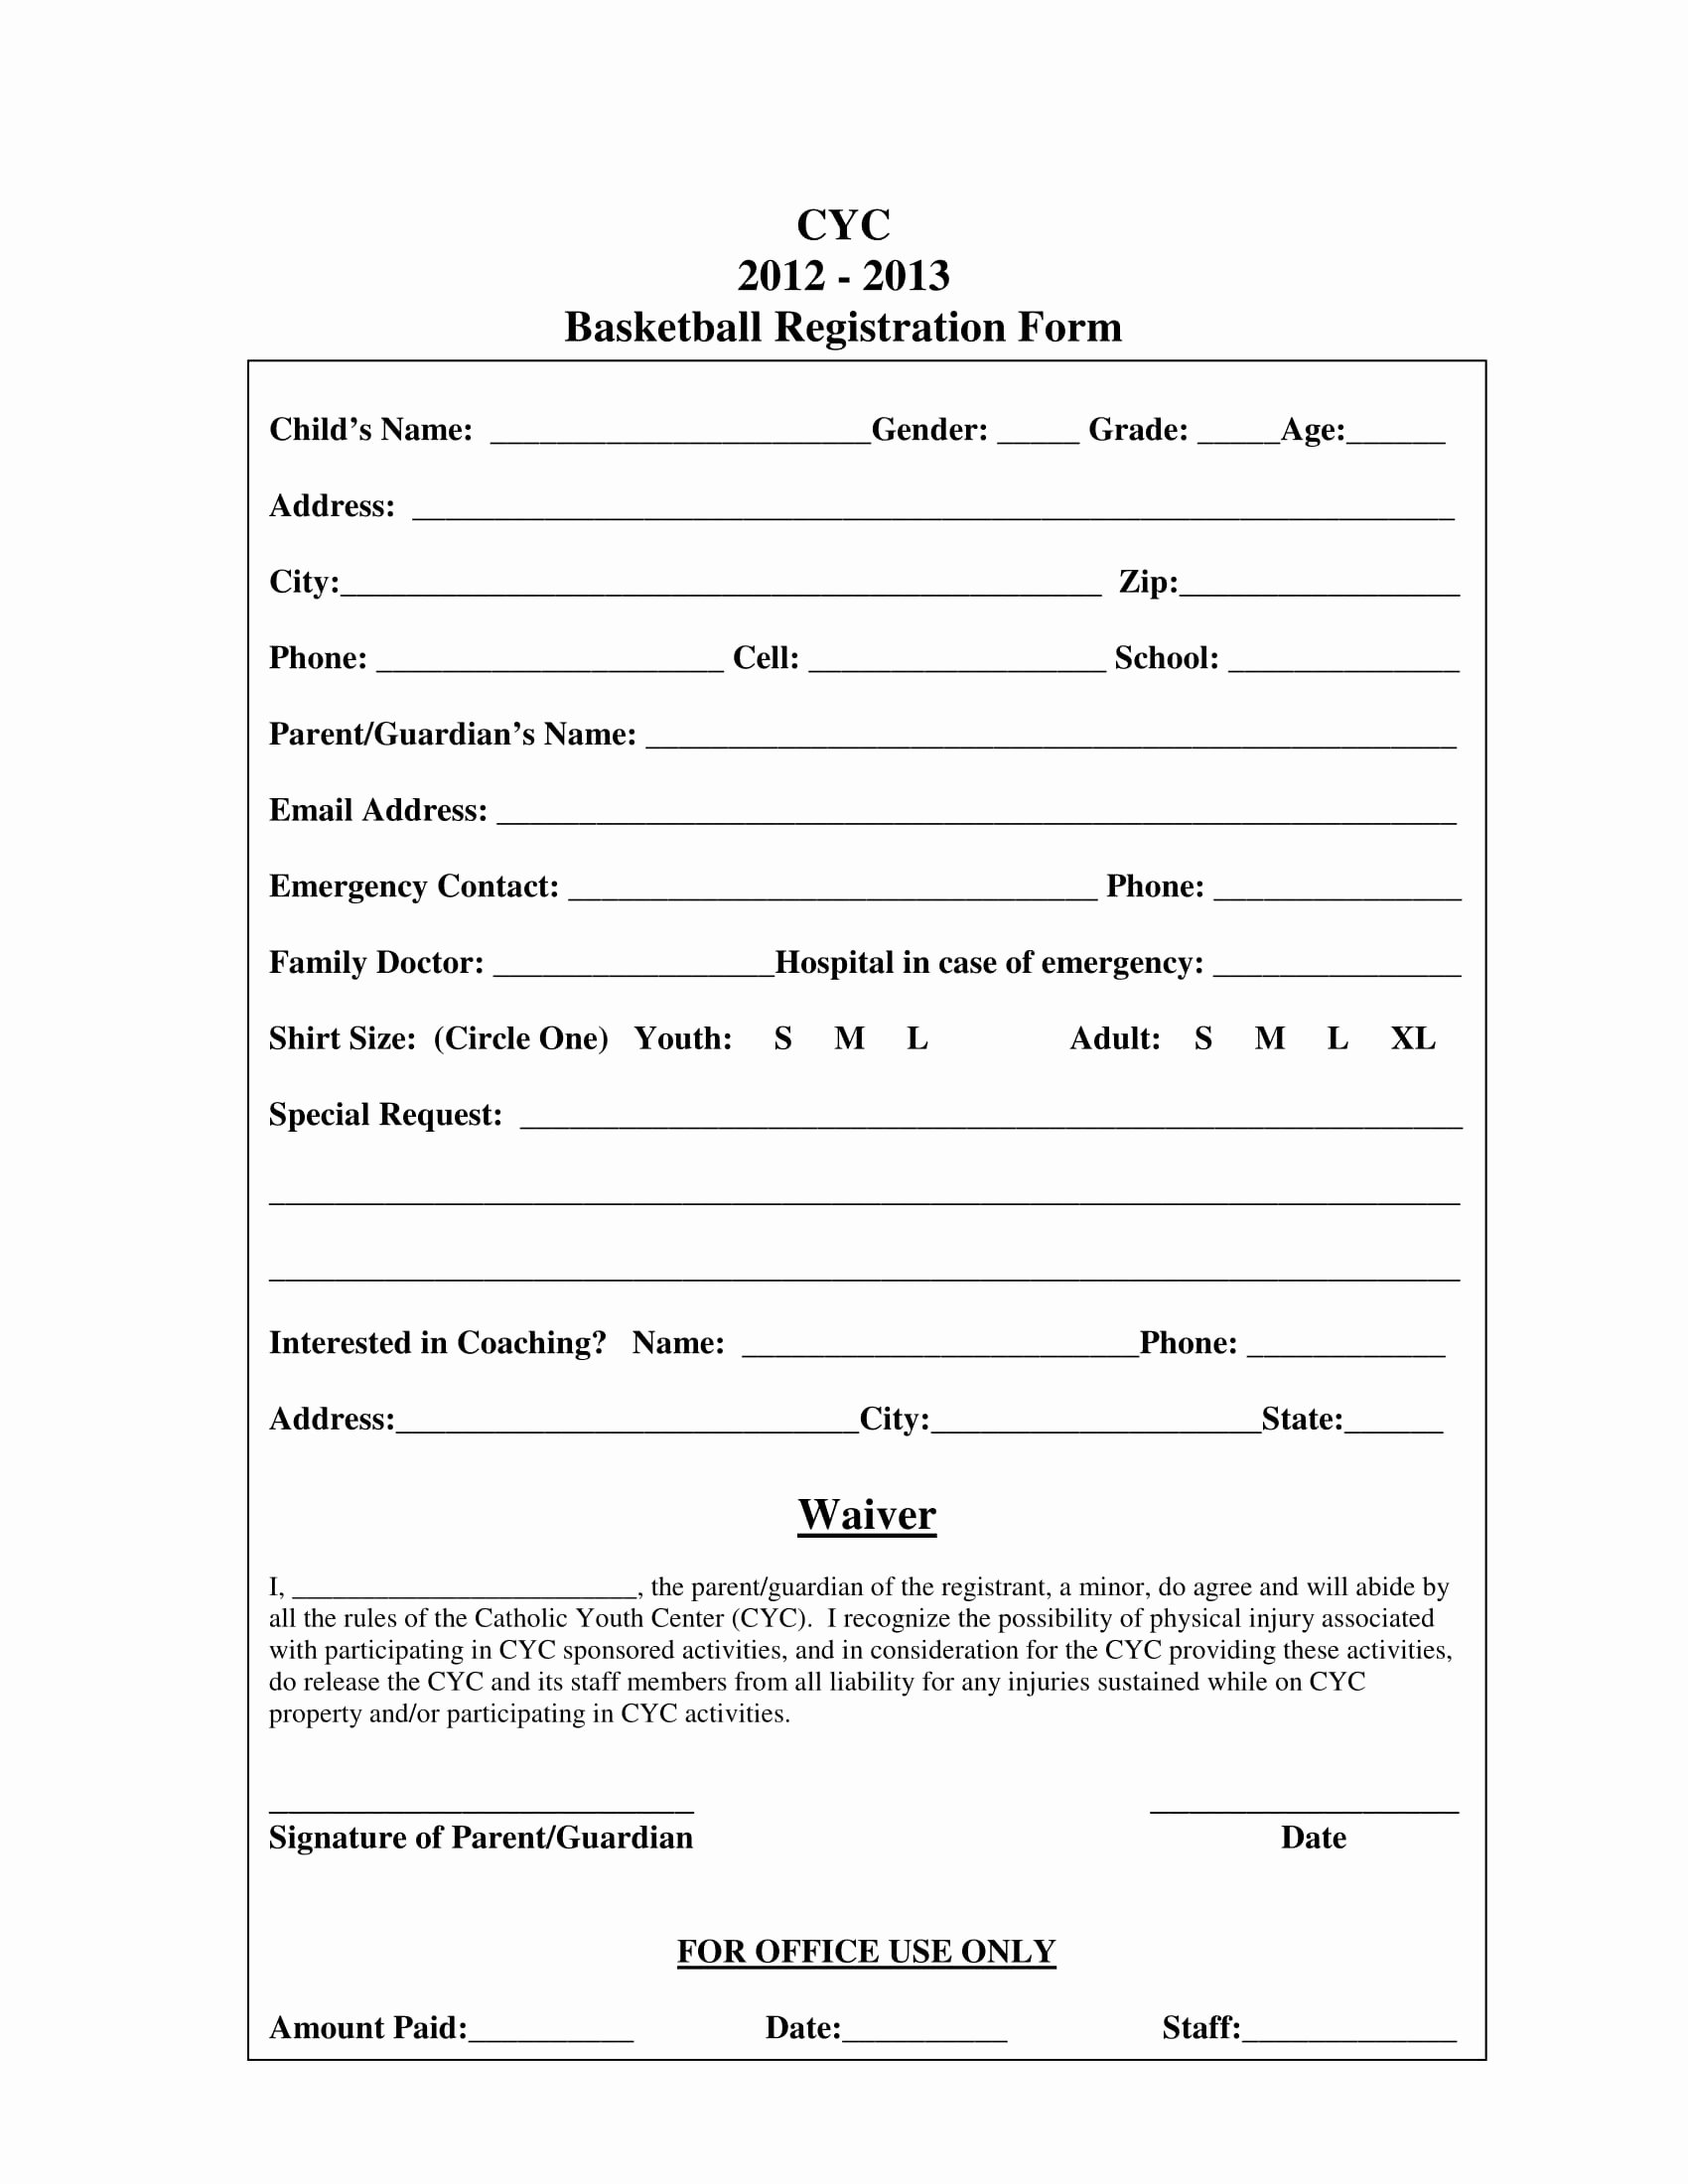 Basketball tournament Registration form Template New 10 Basketball Registration form Samples